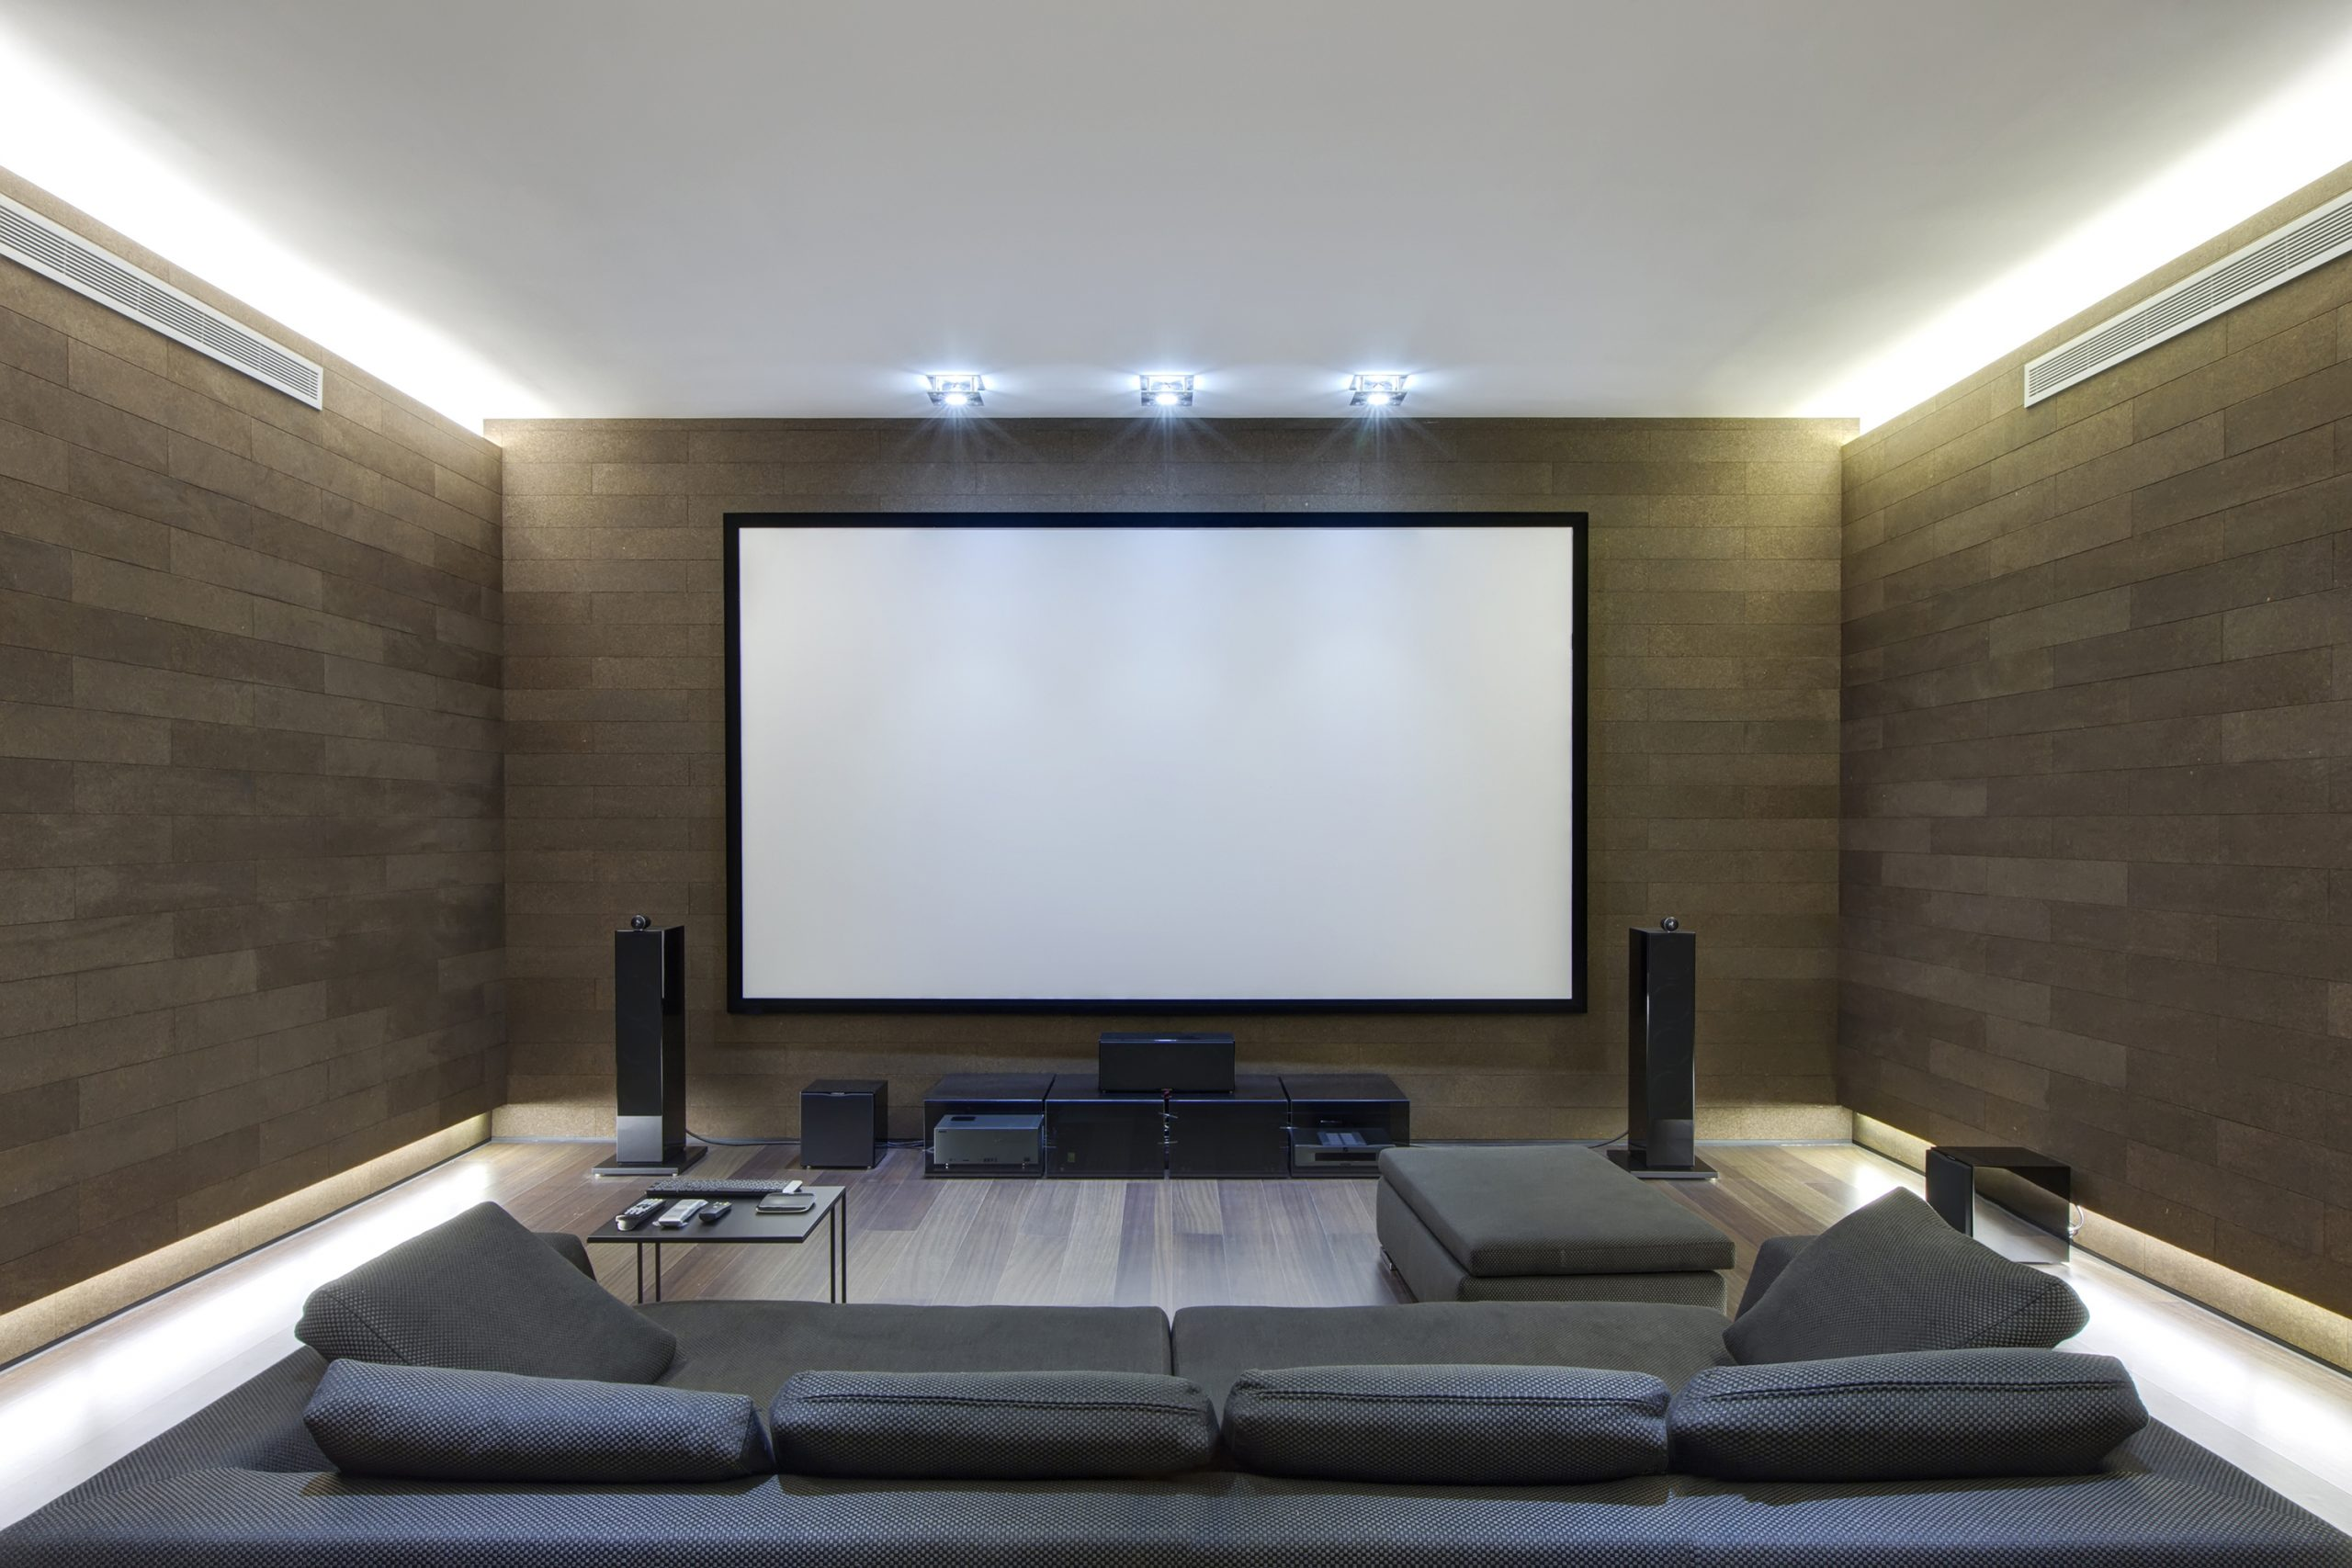 If you have always dreamed of having a home theater, check out one of these incredibly easy home theater designs. You will love these home theater design ideas!